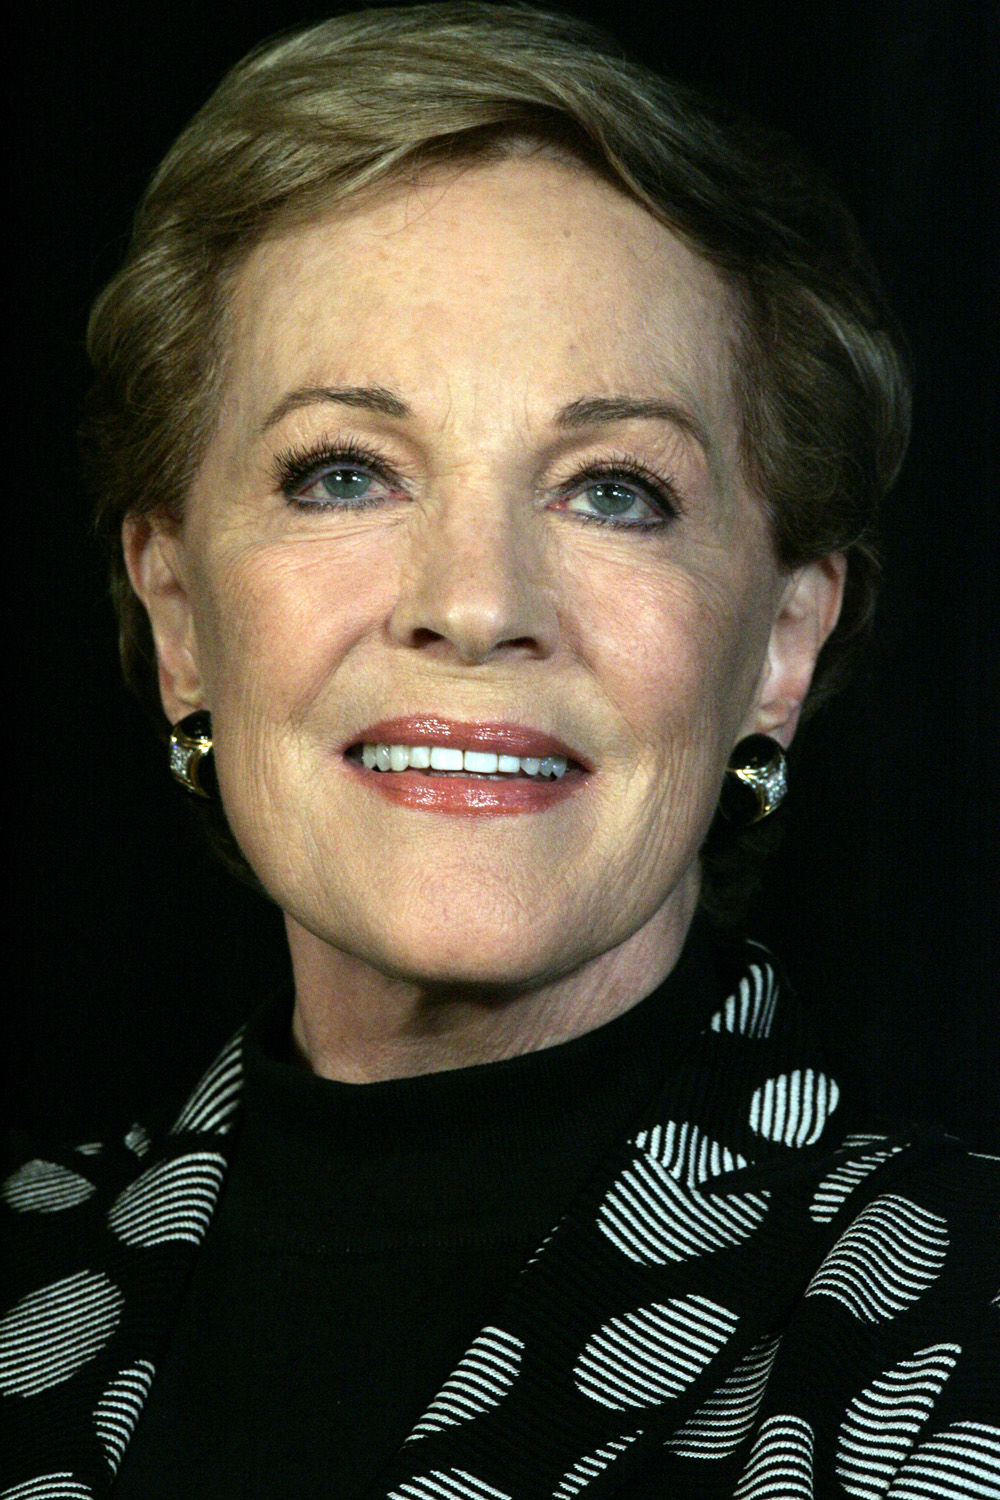 Photo of Julie Andrews: British film and stage actress, singer, author, theatre director, and dancer